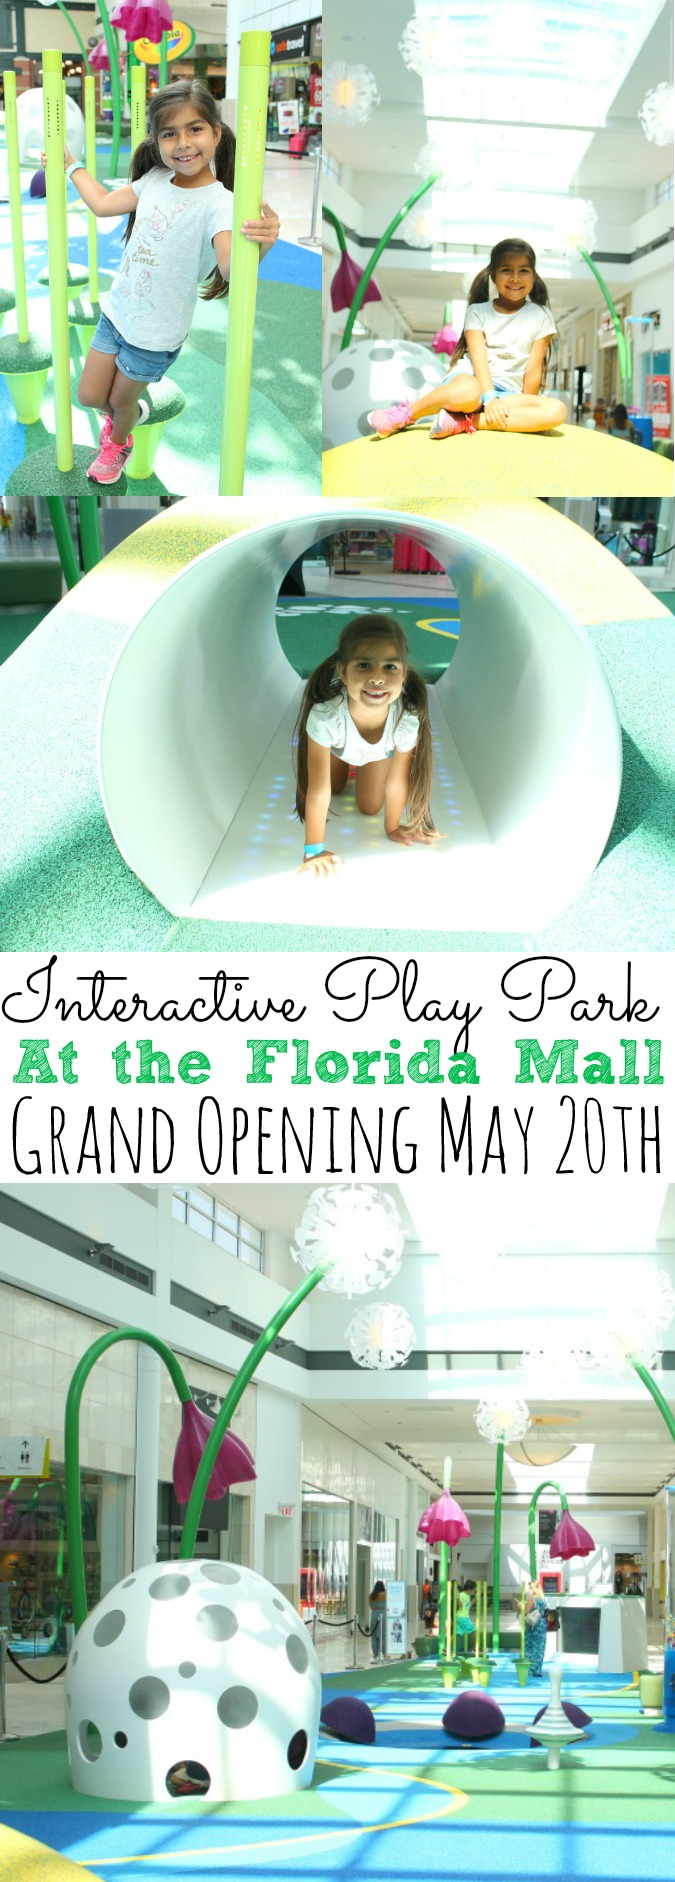 New Interactive Play Park At The Florida Mall | Grand Opening May 20th #PlayPark #ShopFloridaMall - simplytodaylife.com